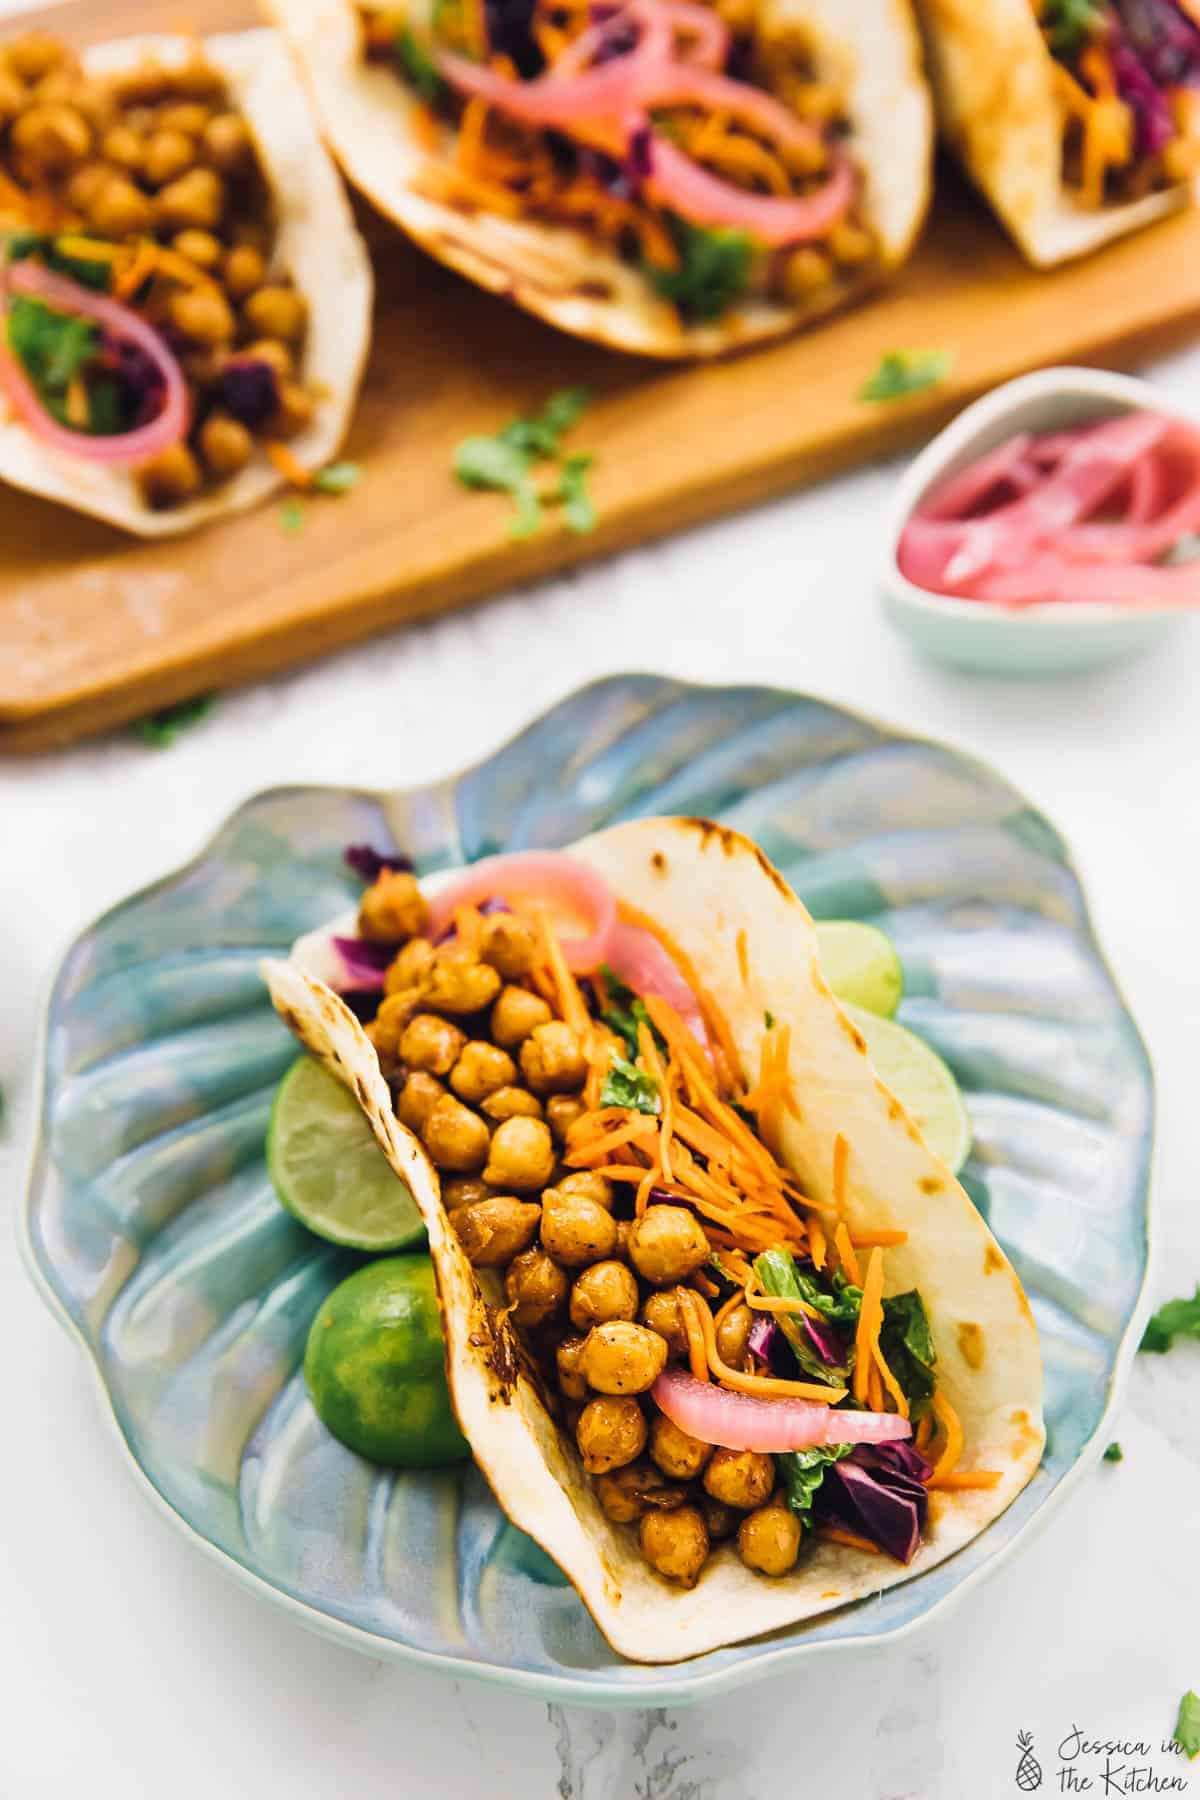 A chickpea taco on a blue plate with more tacos in the background.